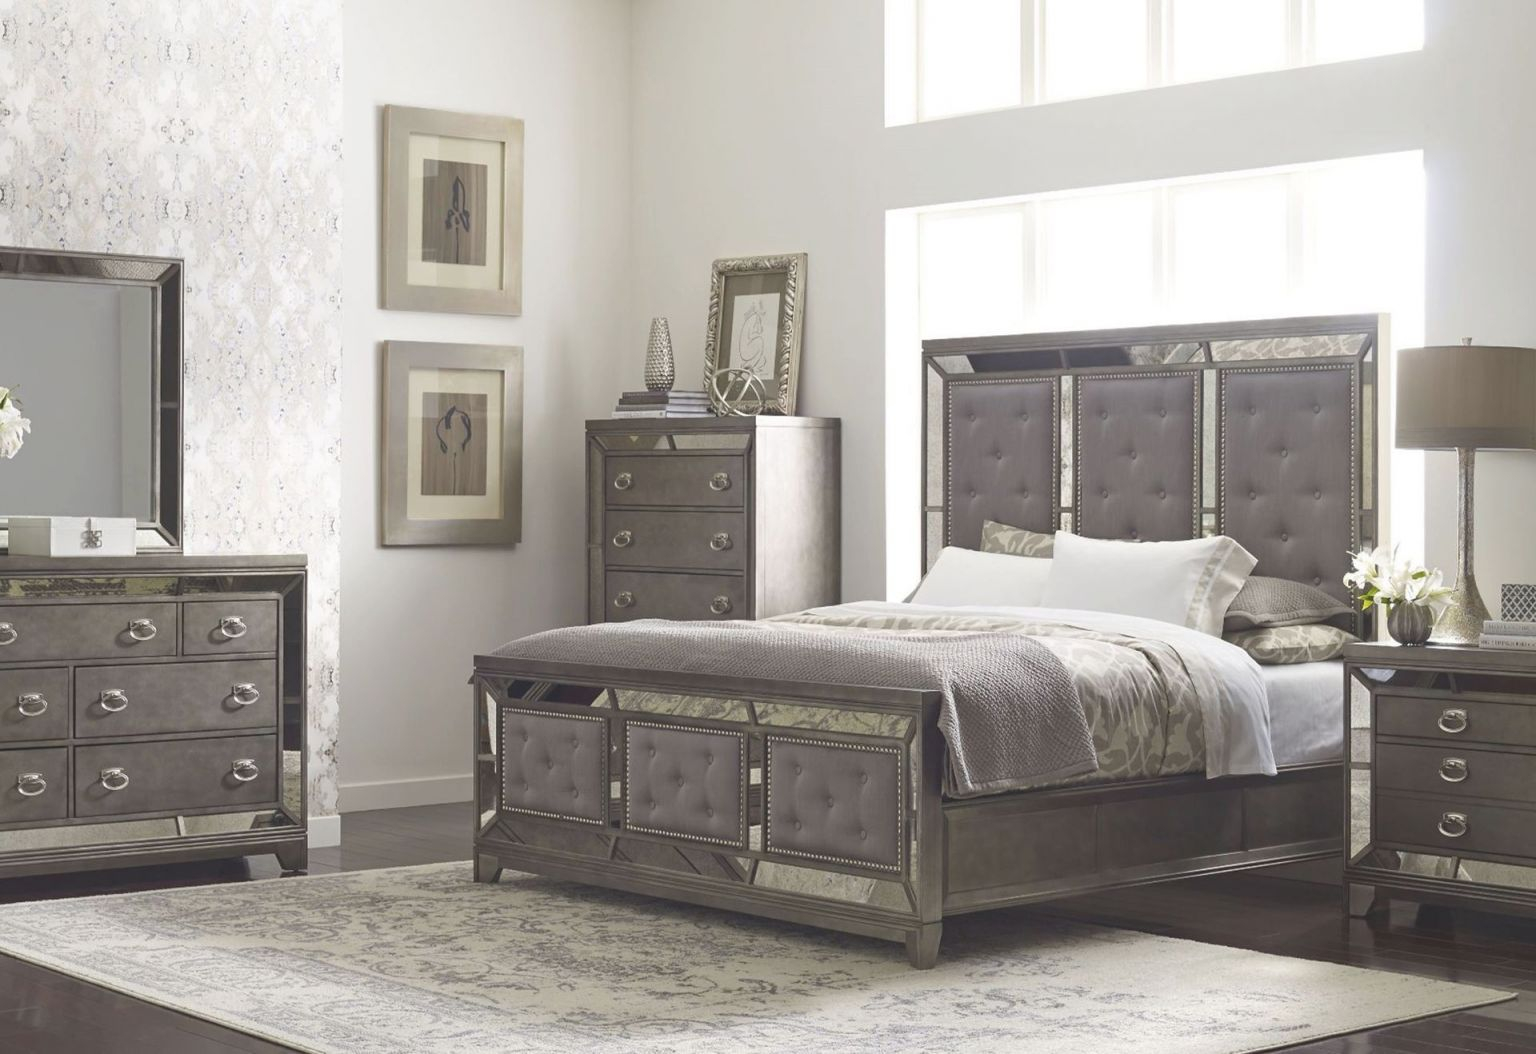 Queen Bedroom Furniture Sets Clearance Awesome Decors